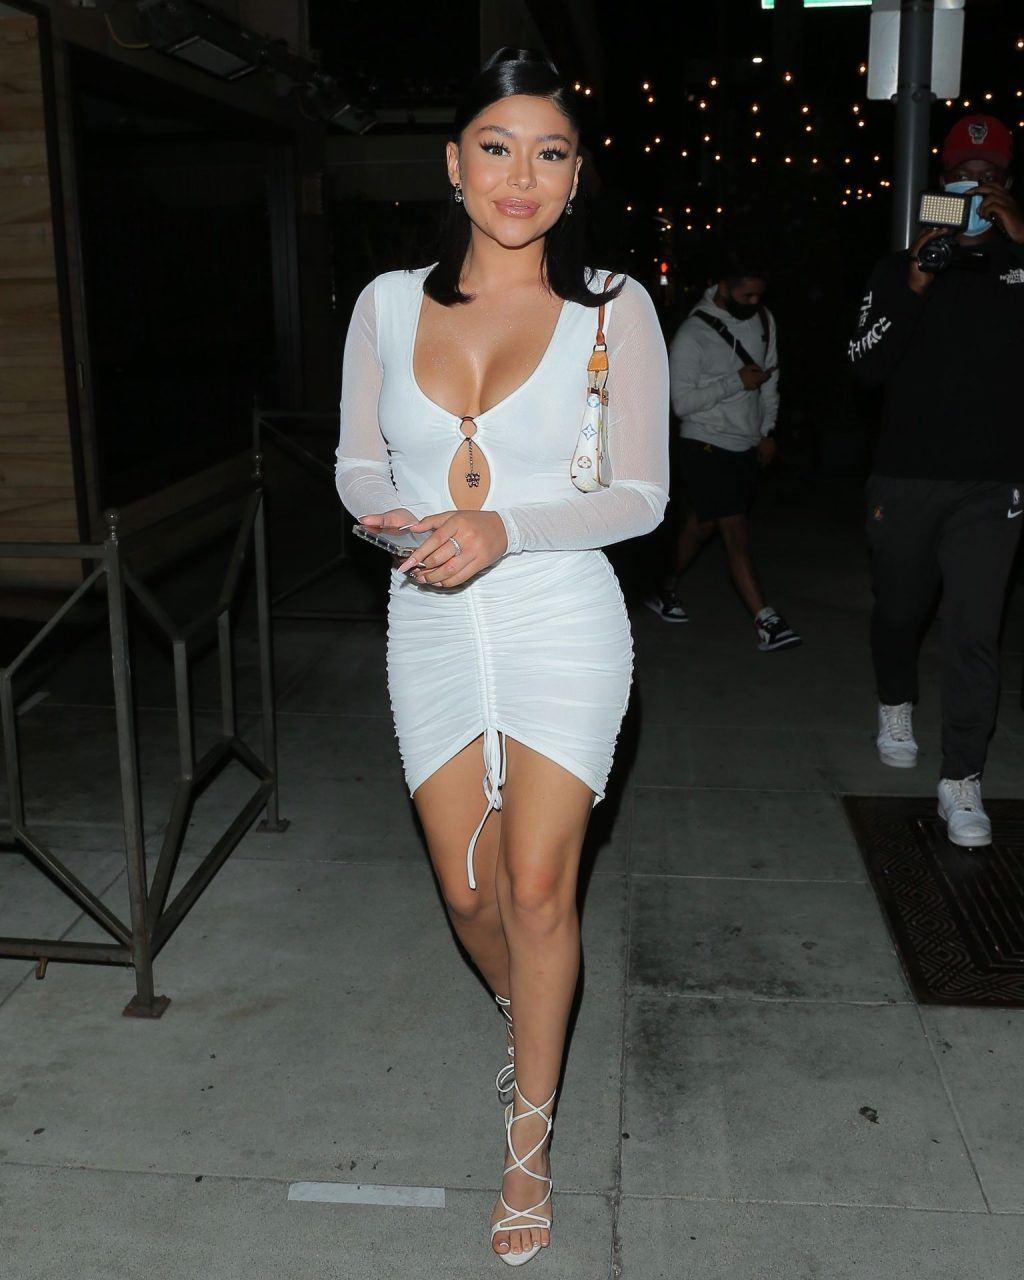 Sexy Daisy Marquez Stuns in White as She Exits Il Pastaio (5 Photos)